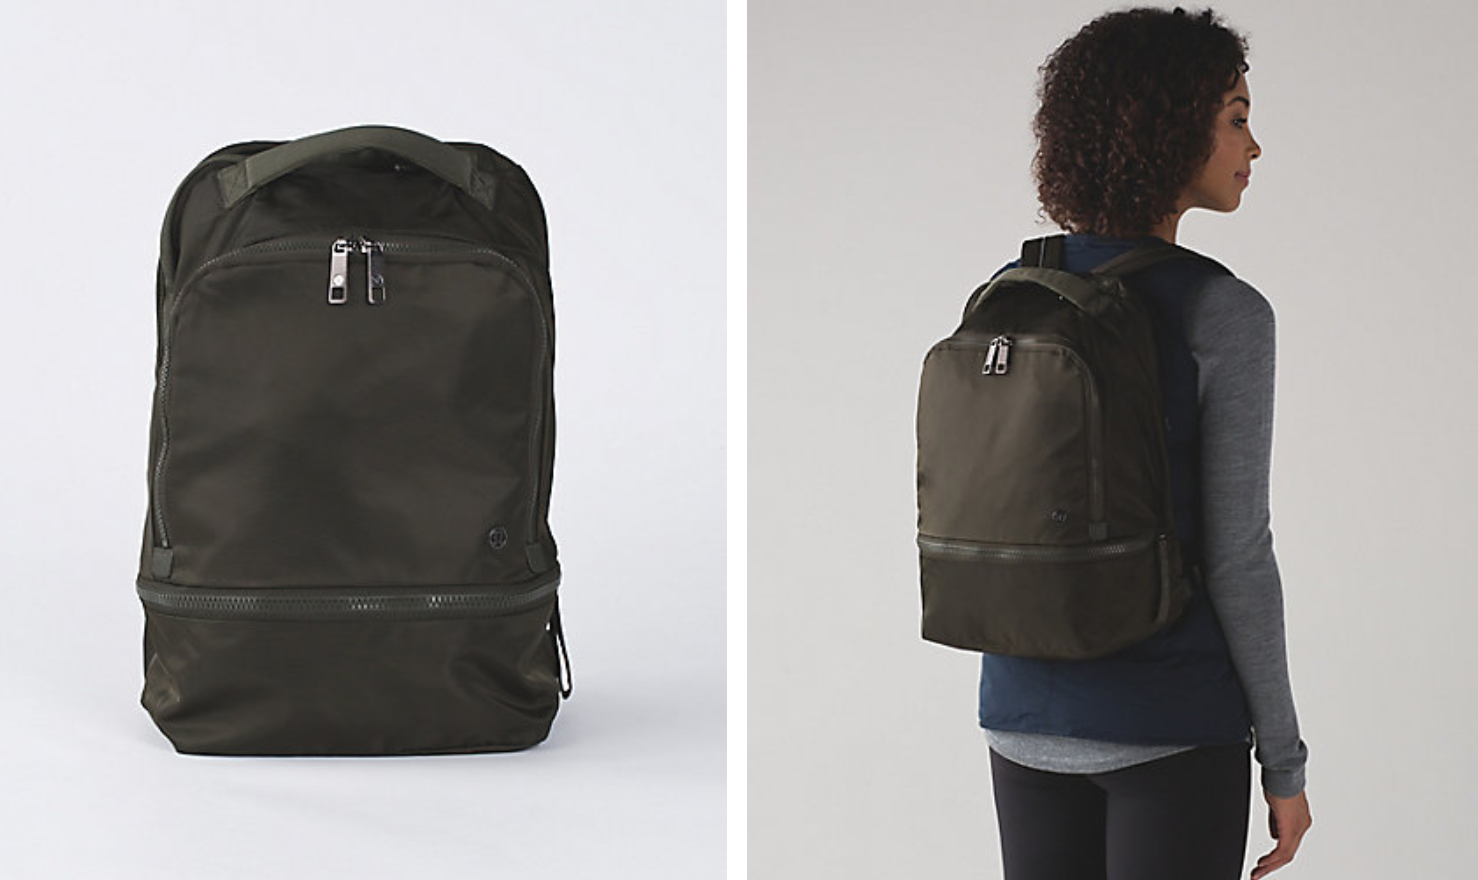 https://api.shopstyle.com/action/apiVisitRetailer?url=https%3A%2F%2Fshop.lululemon.com%2Fp%2Fbags%2FGo-Lightly-Backpack%2F_%2Fprod8430919%3Frcnt%3D43%26N%3D1z13ziiZ7vf%26cnt%3D46%26color%3DLW9AFVS_026083&site=www.shopstyle.ca&pid=uid6784-25288972-7